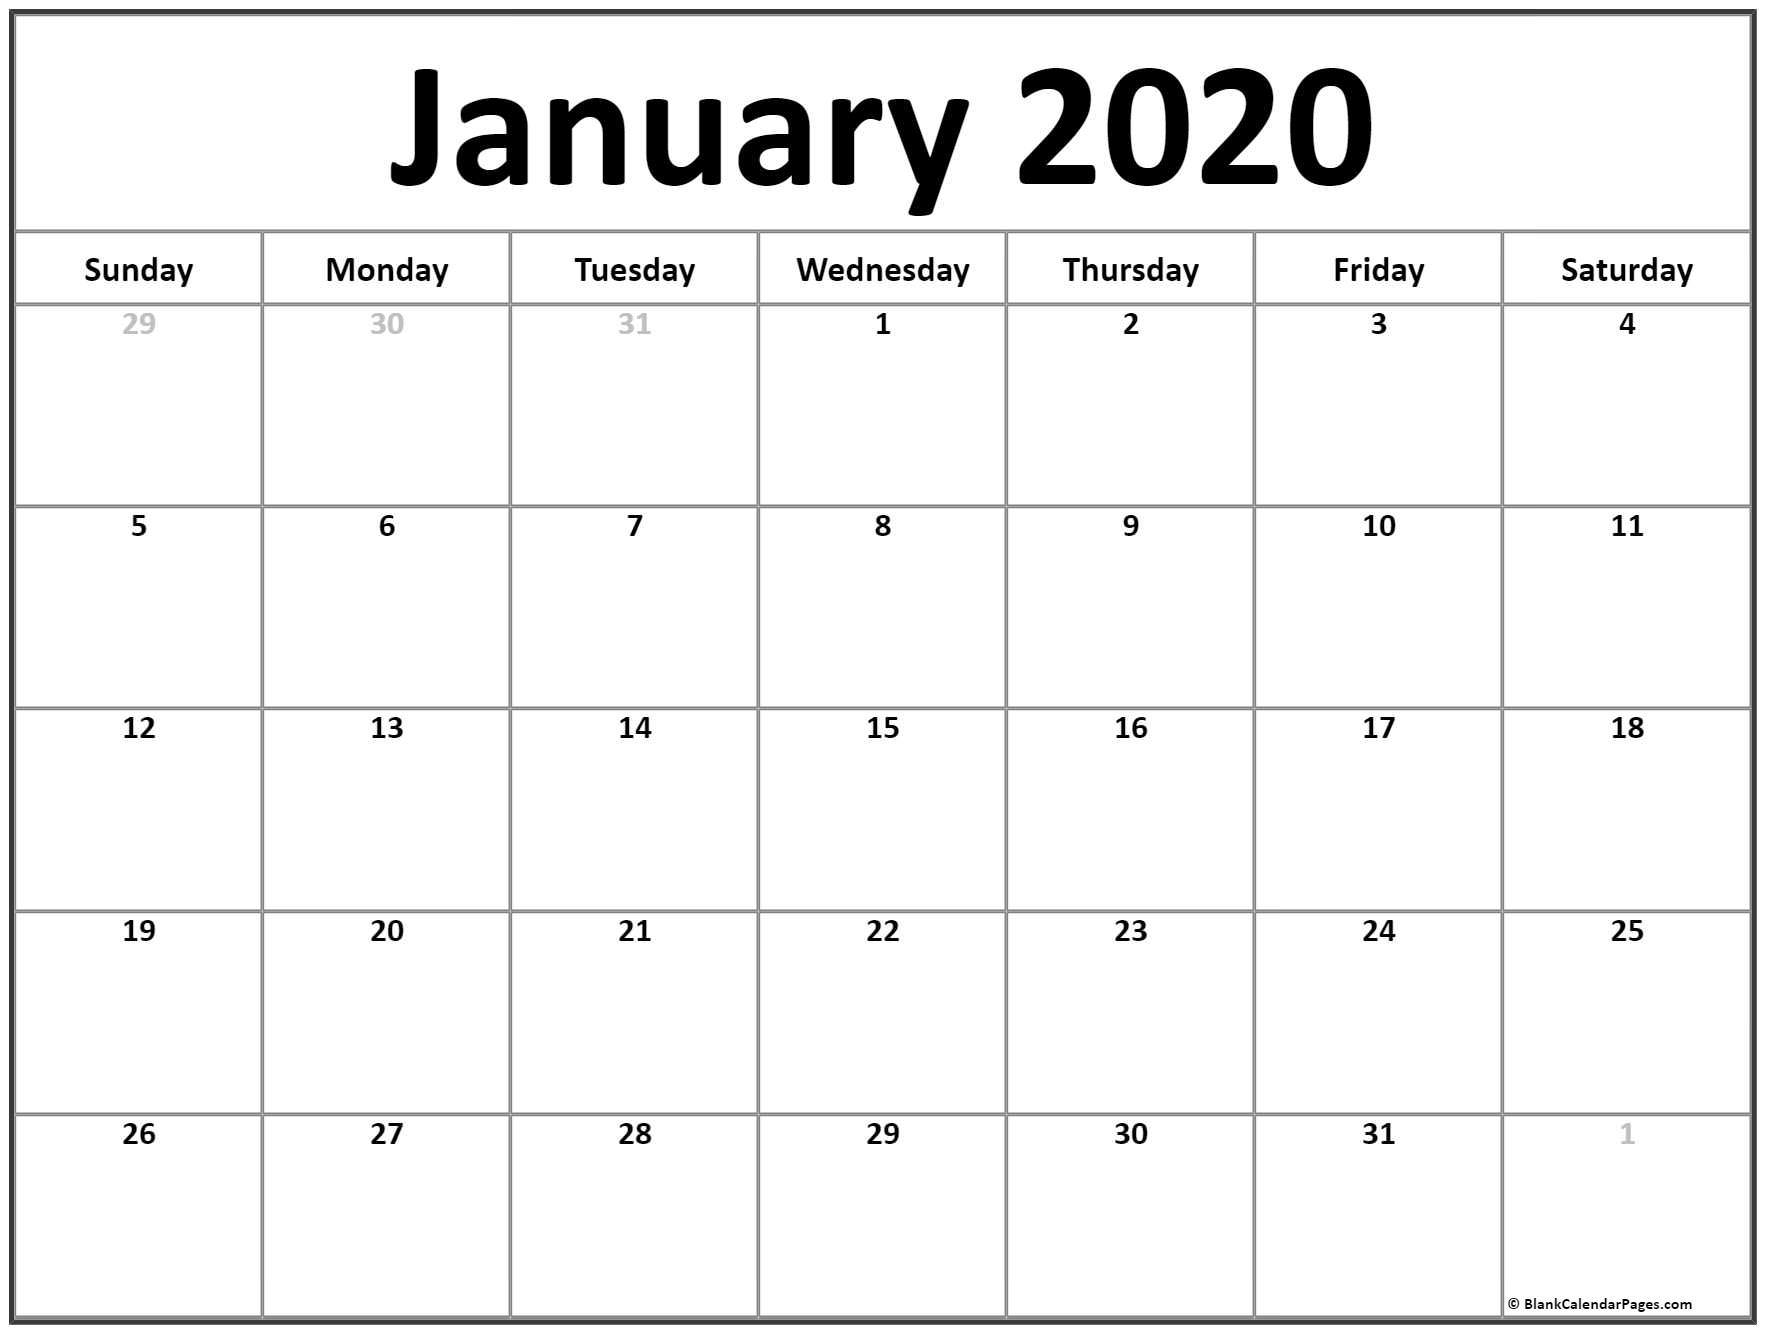 January 2020 Calendar | Free Printable Monthly Calendars for 2020 Imom Free Calendars To Print